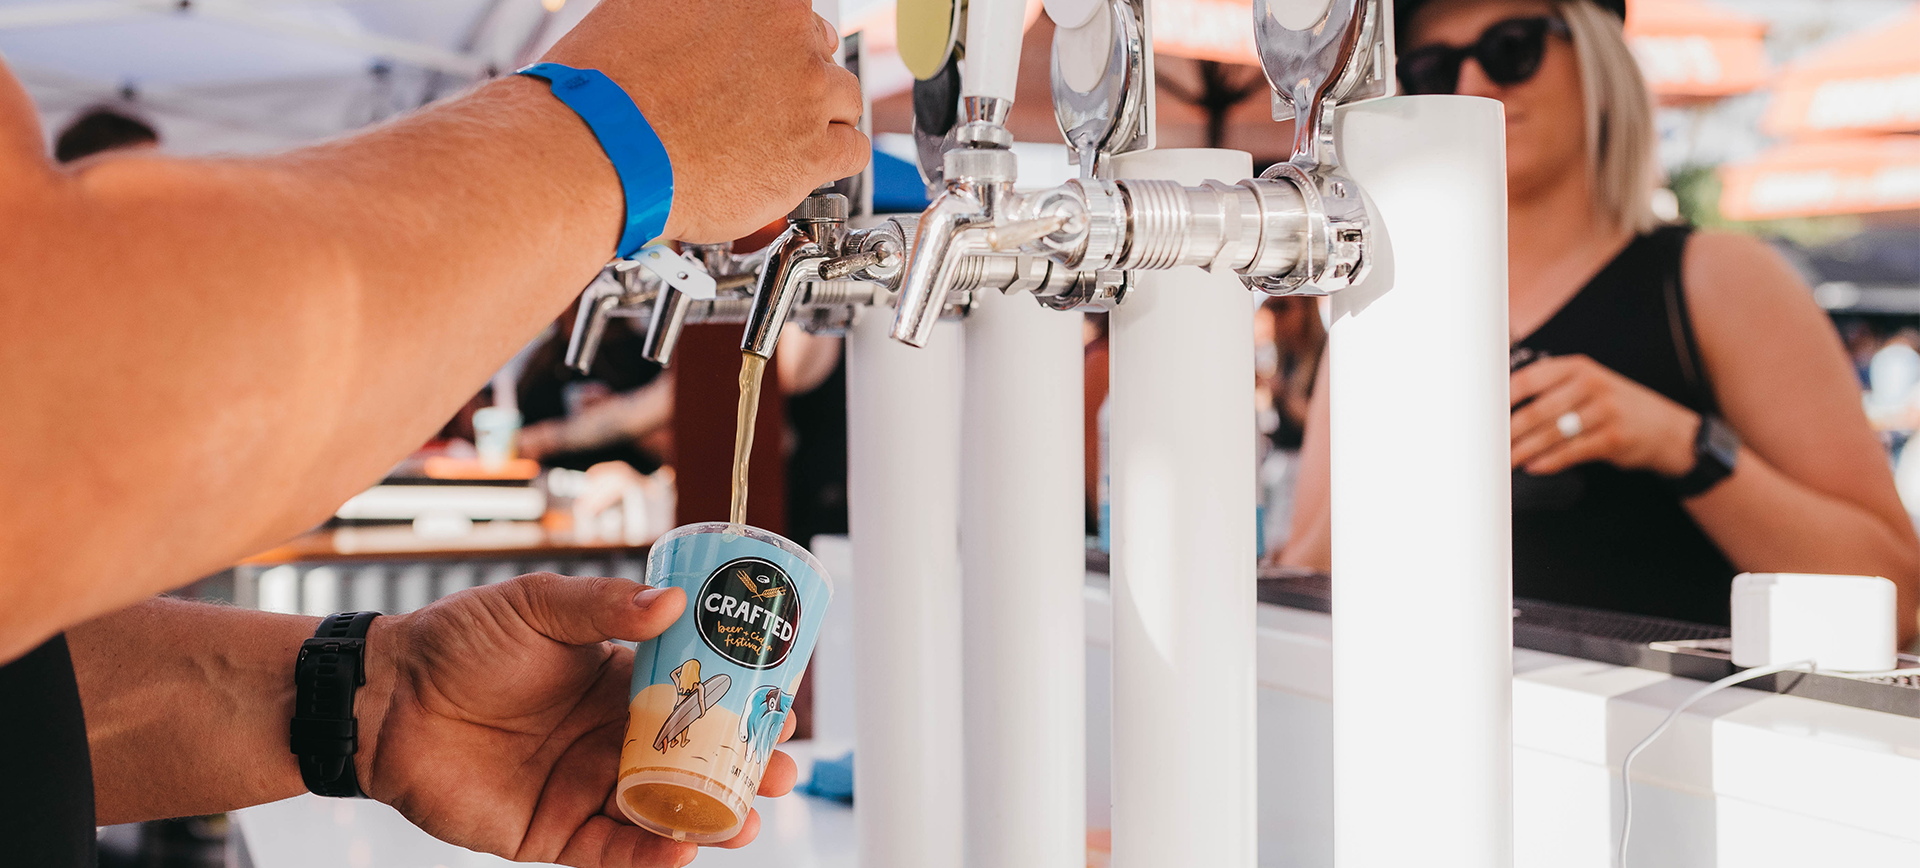 Cheers, Gold Coast. The Crafted Beer & Cider Festival is back!